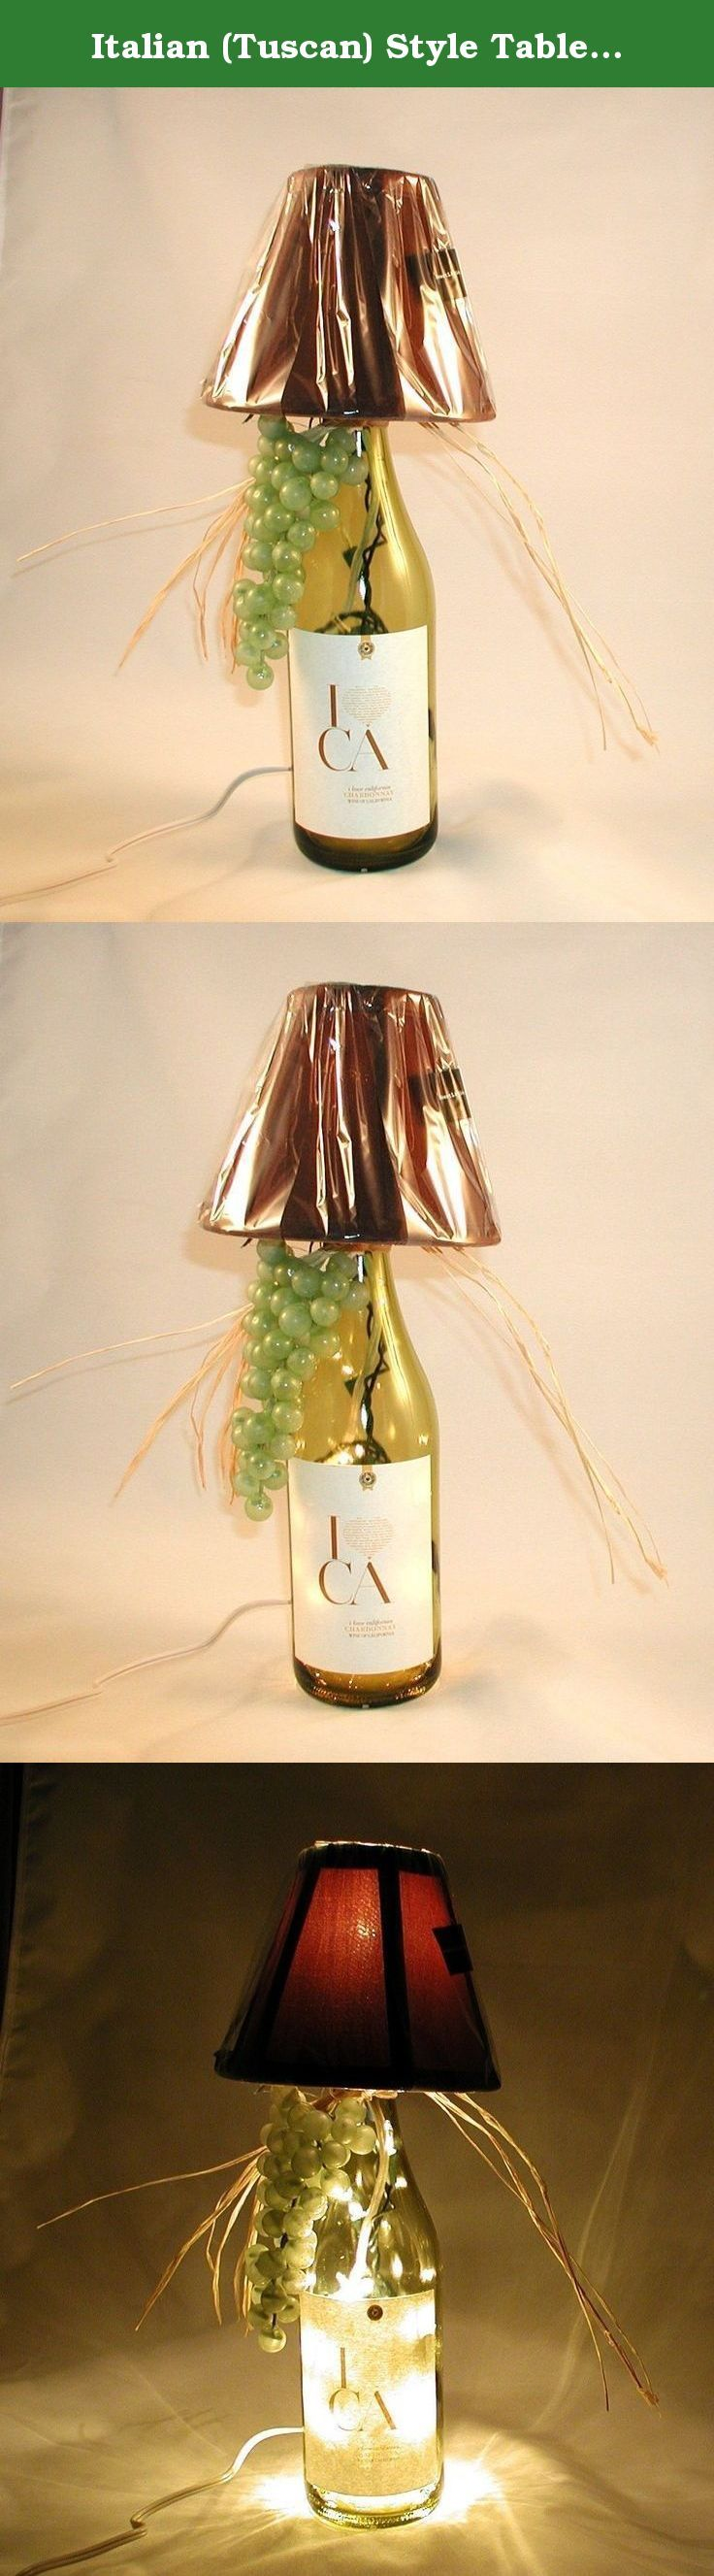 "Italian (Tuscan) Style Table Lamp Crafted From a re-cycled I Love California Chardonnay WineBottle. Shipping is included. Very attractive wine bottle table lamp made with a recycled I Love California Chardonnay wine bottle. The bottle is light amber and the shade is brown. Lamp is approximately 15"" tall and approximately 10 "" wide (including the raffia). It has a nite light under the shade and mini lights inside the bottle. Comes with a long, switched cord for convenience. The lamp shade…"